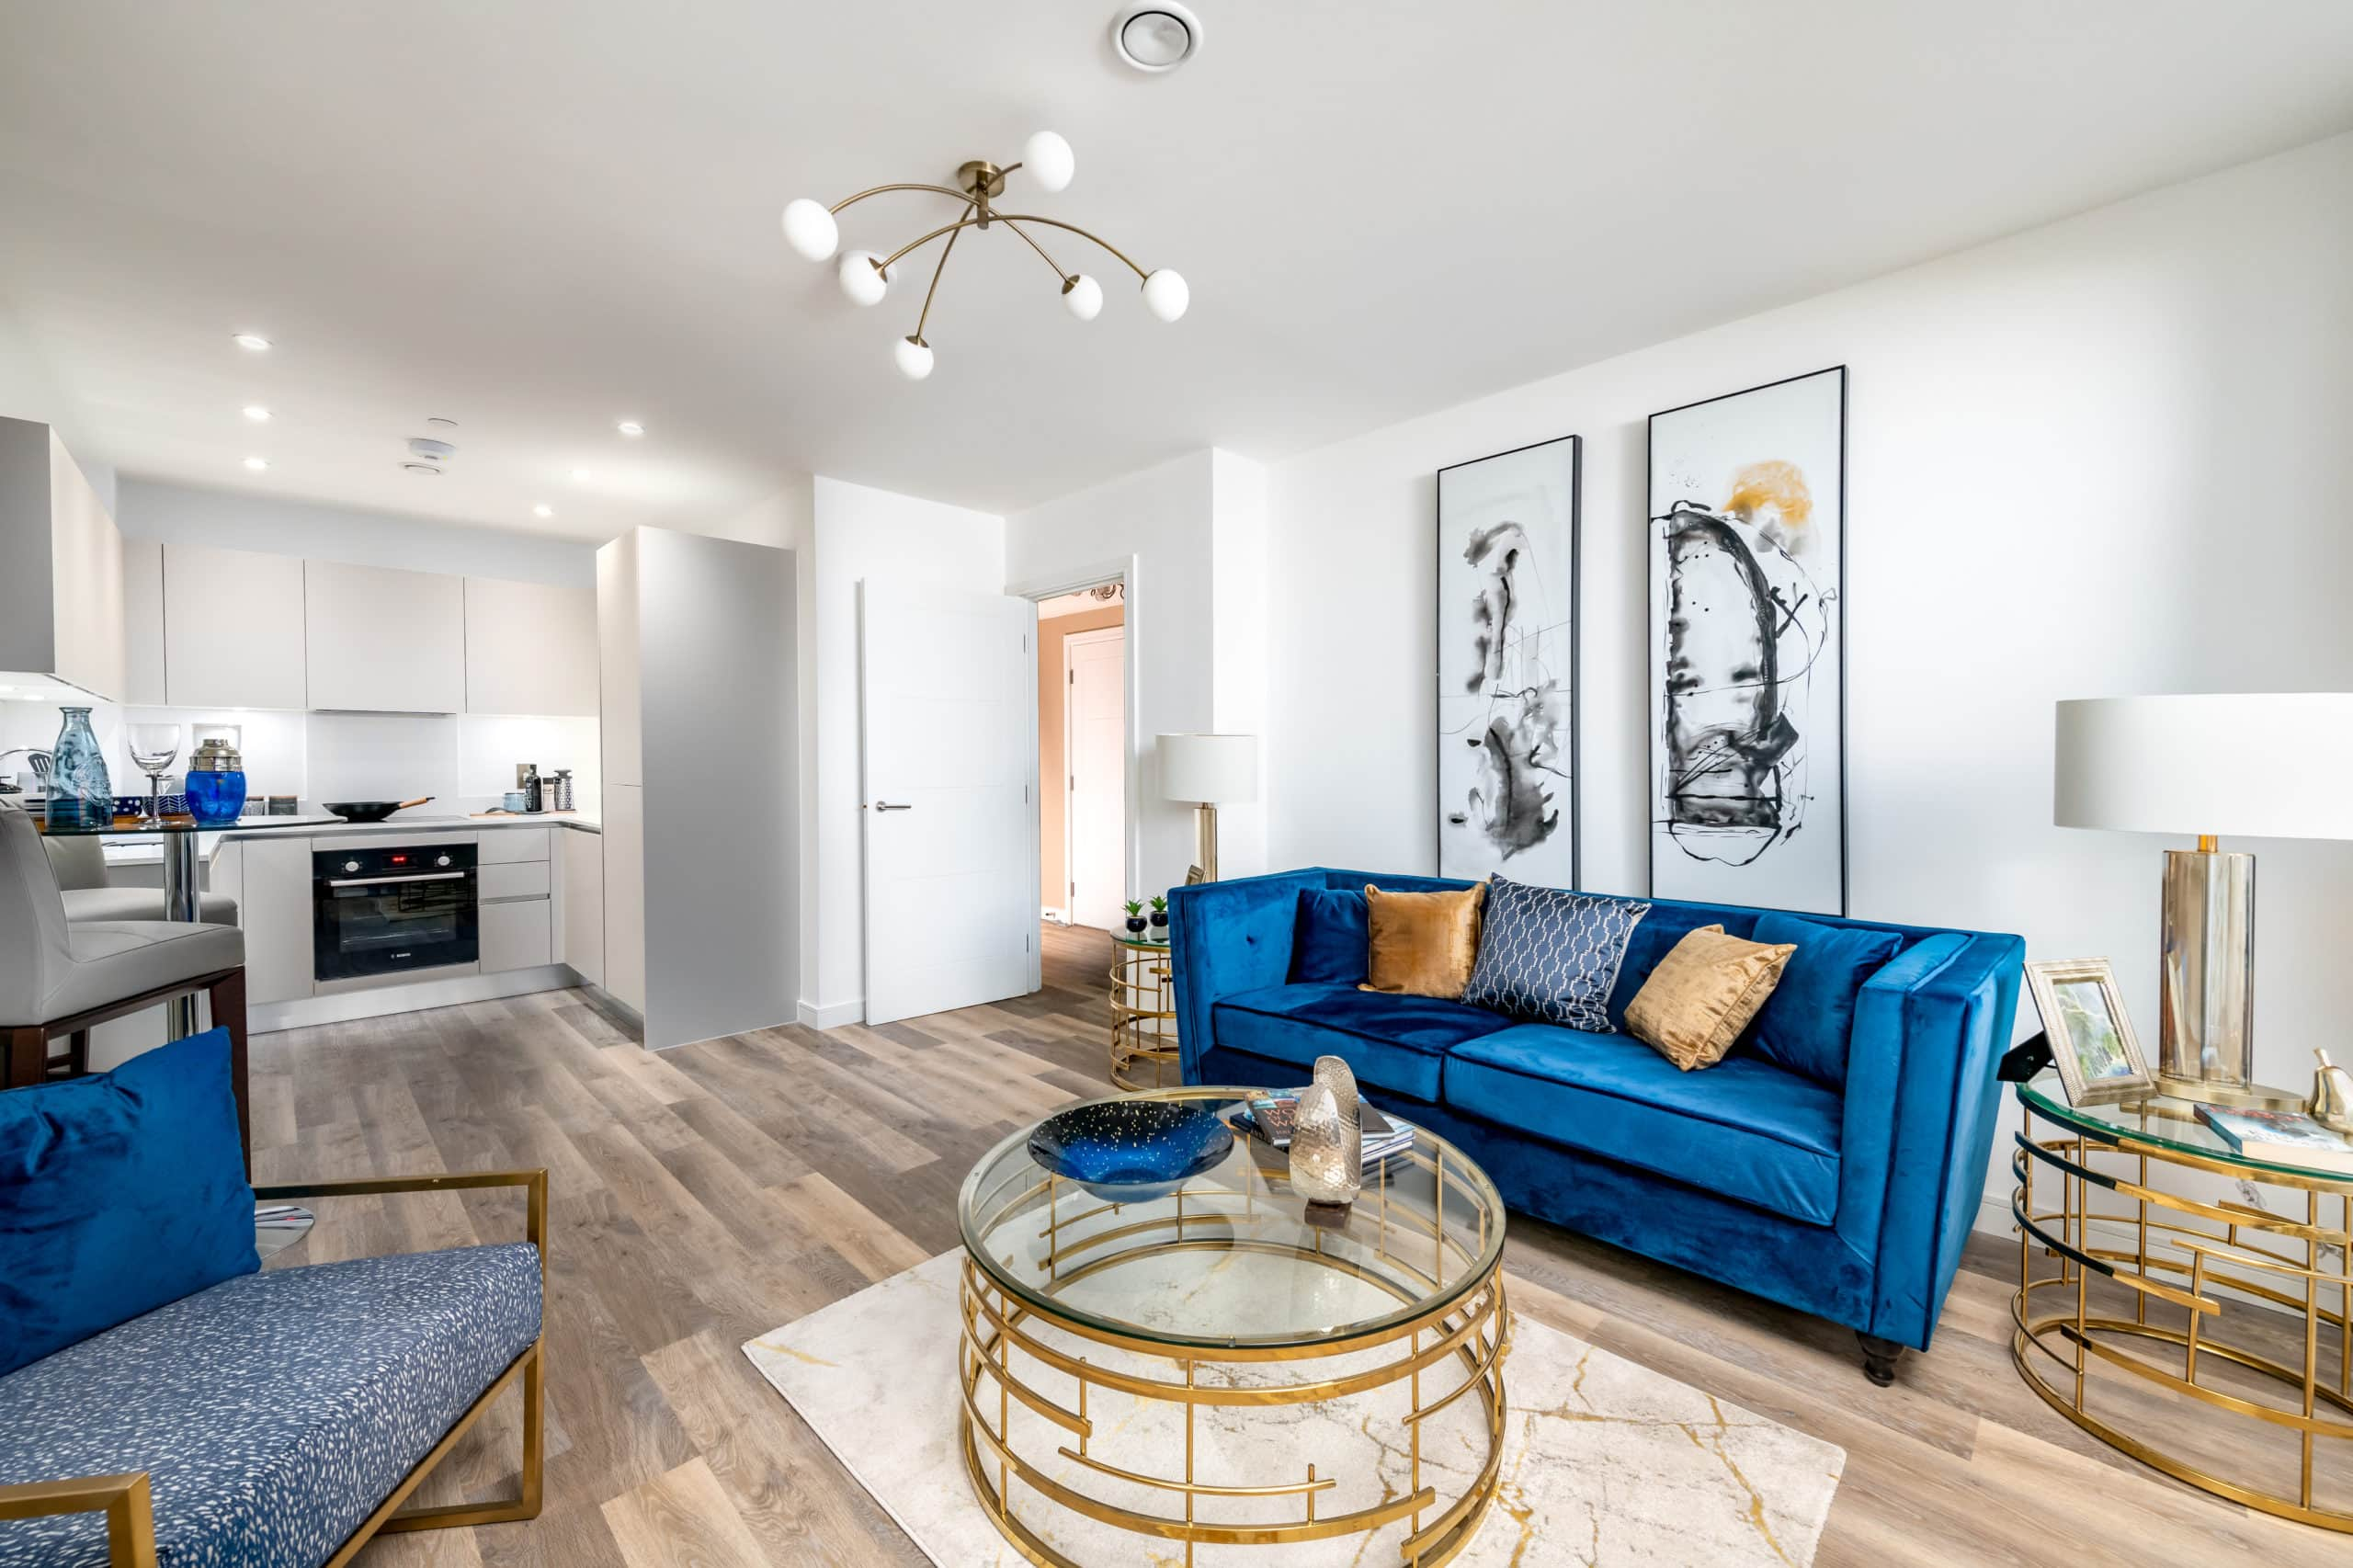 Show home photography of a living room at SO Resi's' SO Resi Ealing - Shared Ownership homes available on Share to Buy